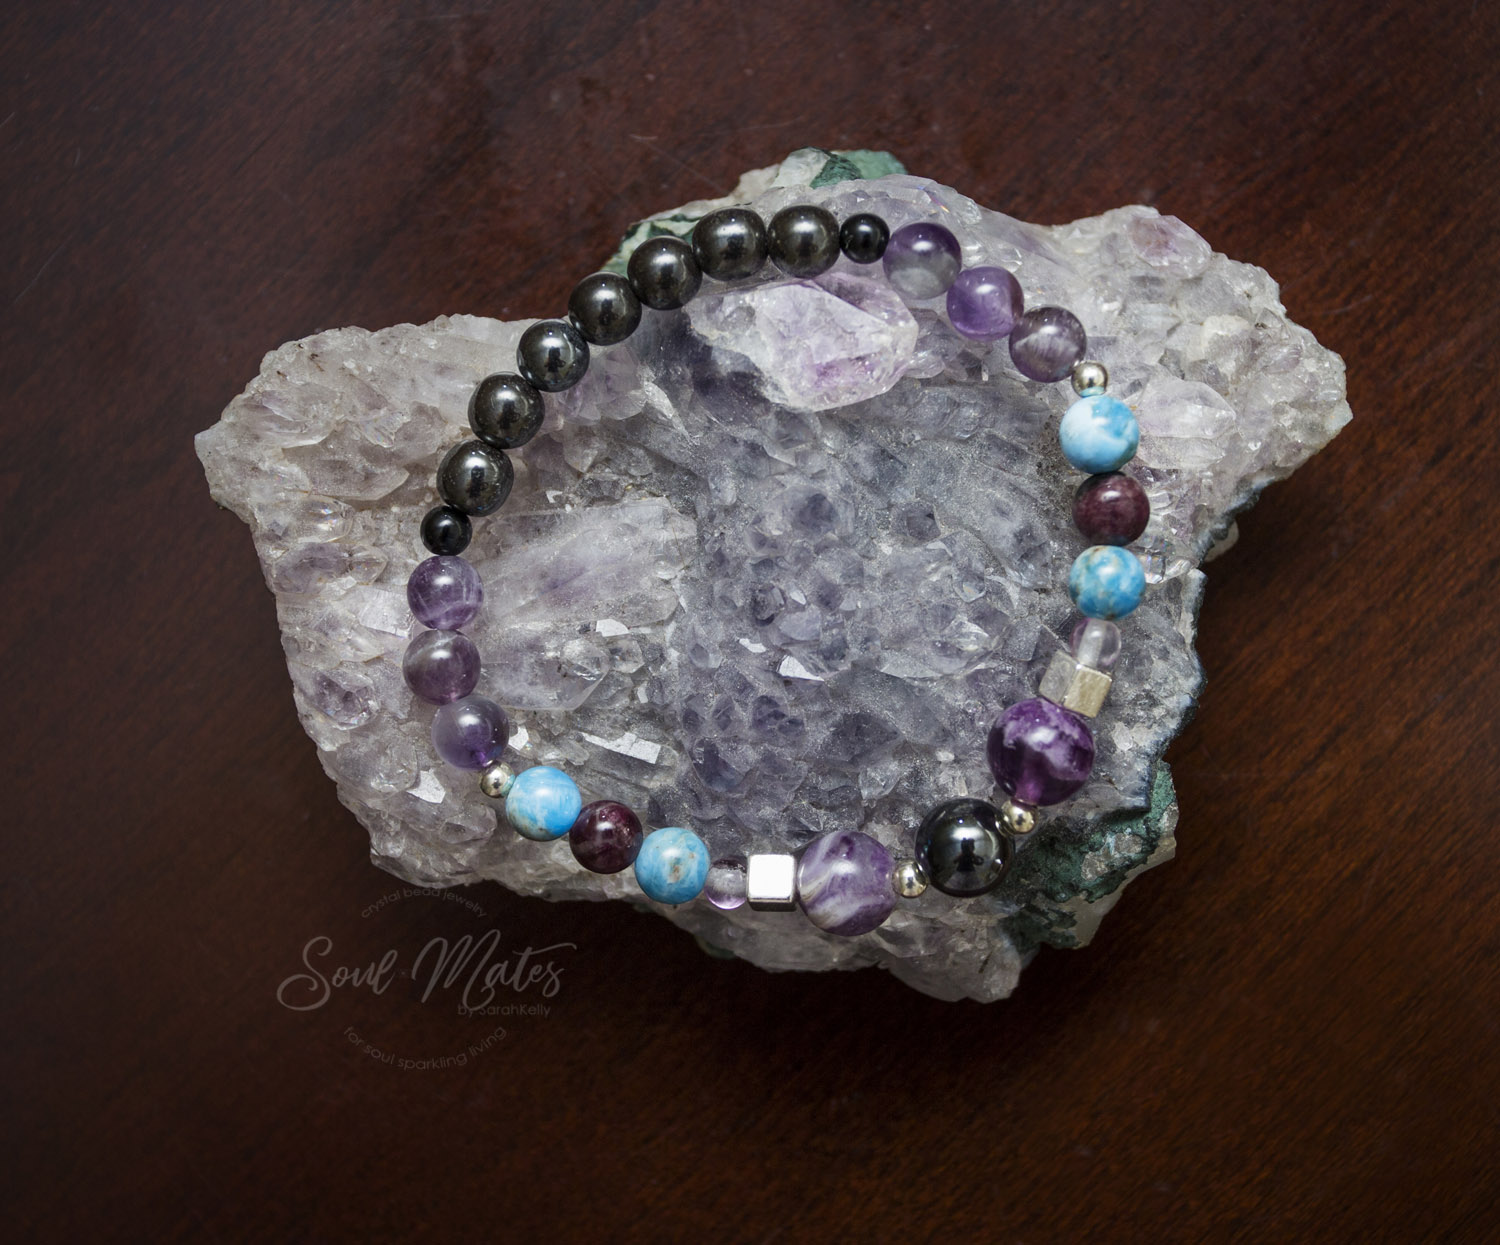 Intuition  - Fluorite, Apatite and Amethyst open intuition while Tourmaline and Hematite balance and ground energies.  Also falls into the Focused mind category as Fluorite and Hematite allow for an organized state of mind.  $22